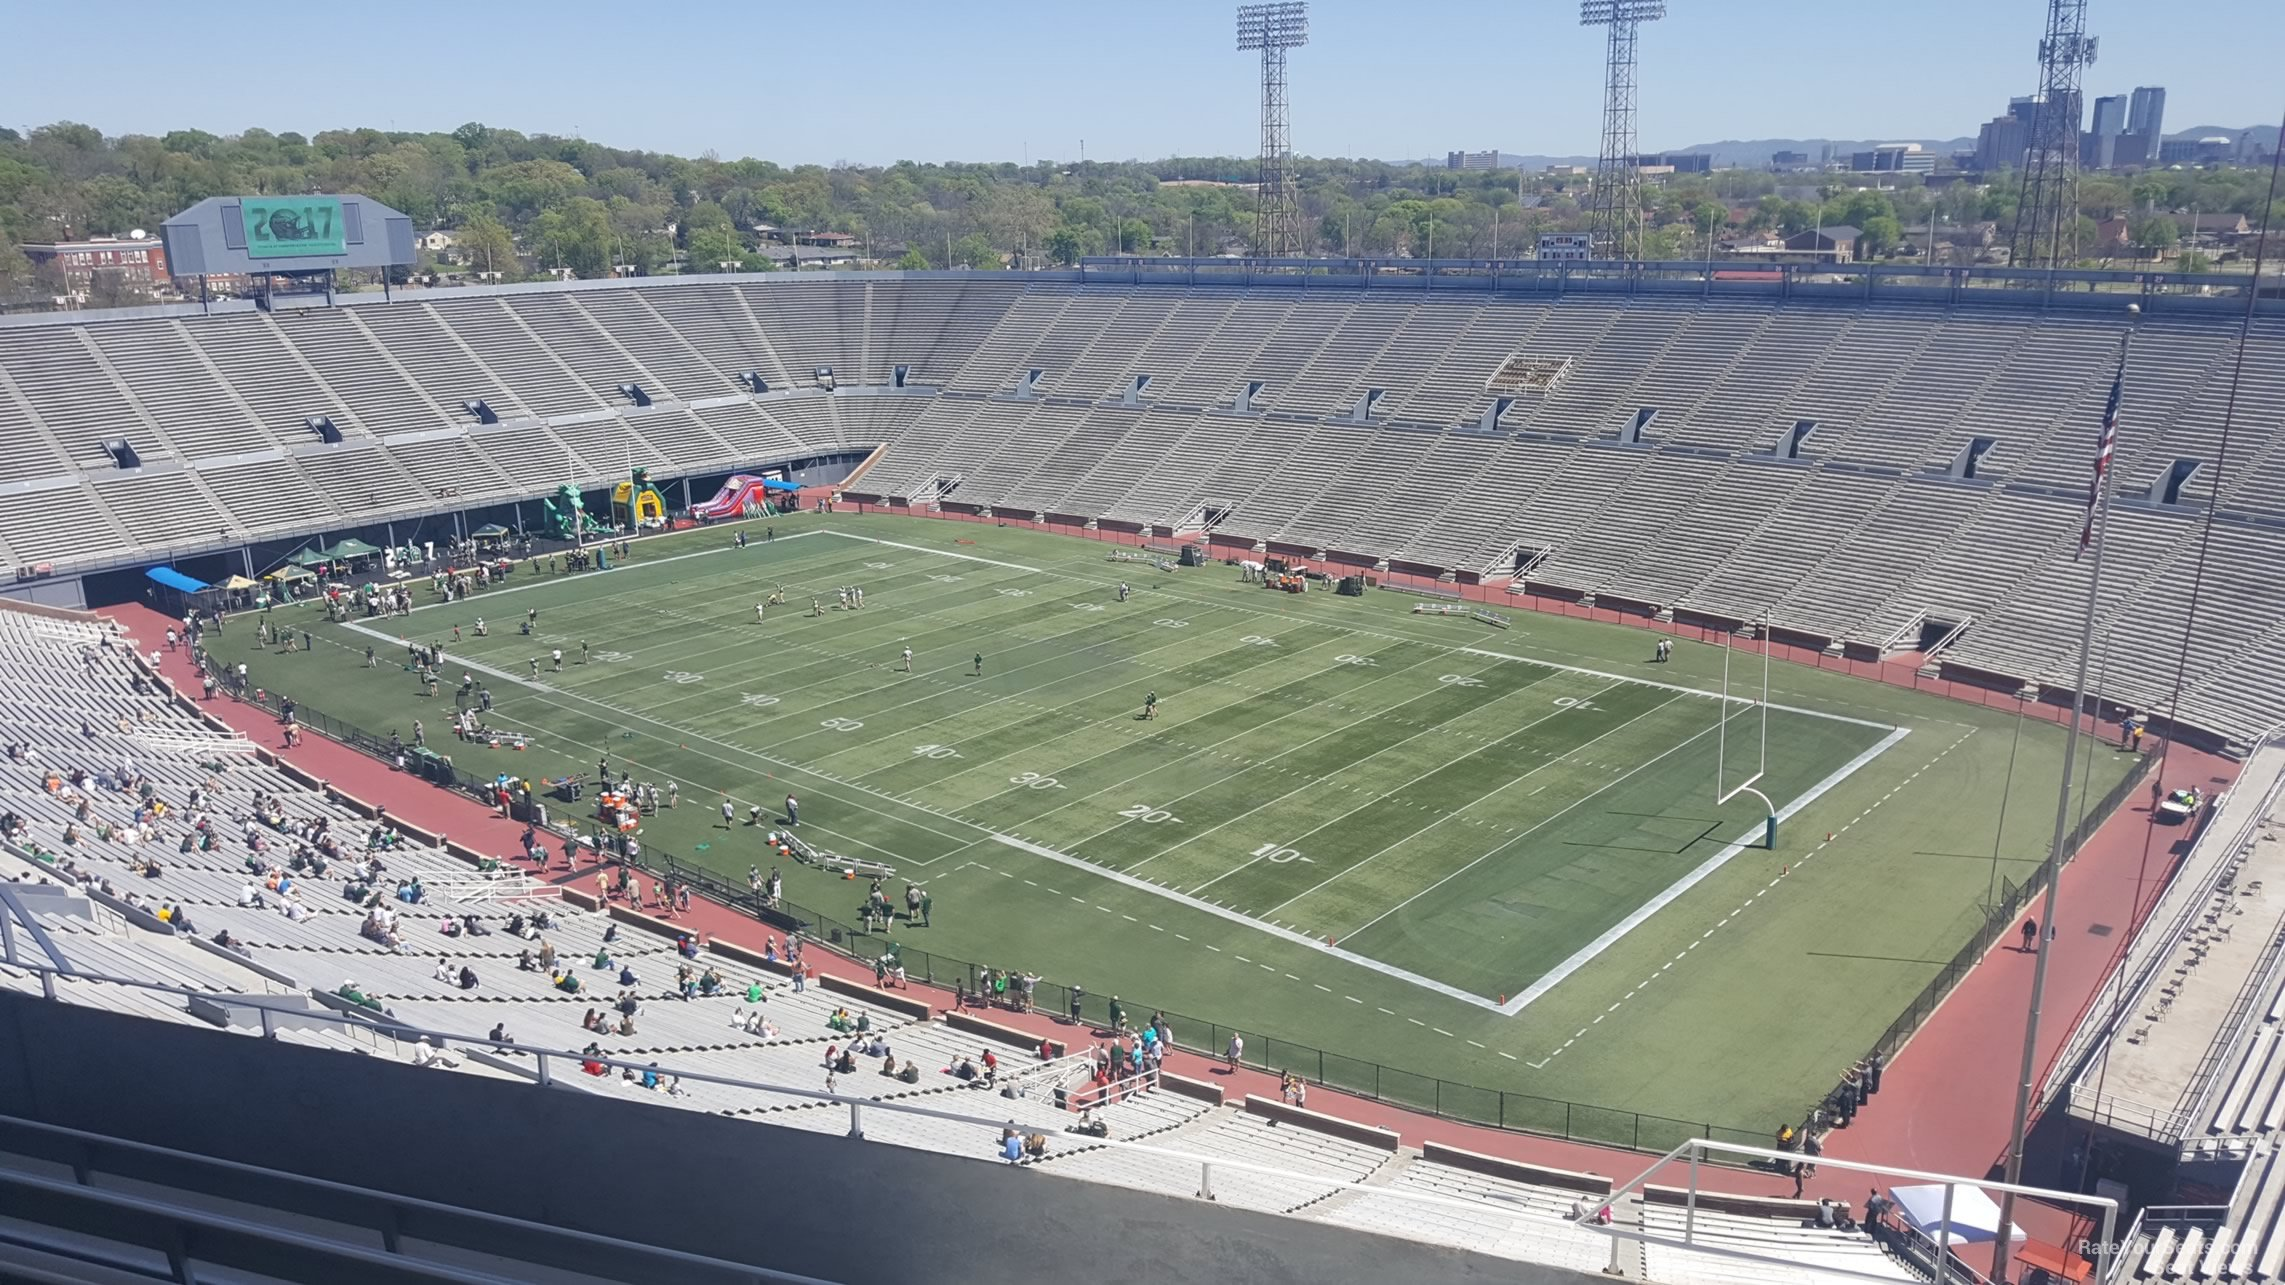 Section 6U1 seat view